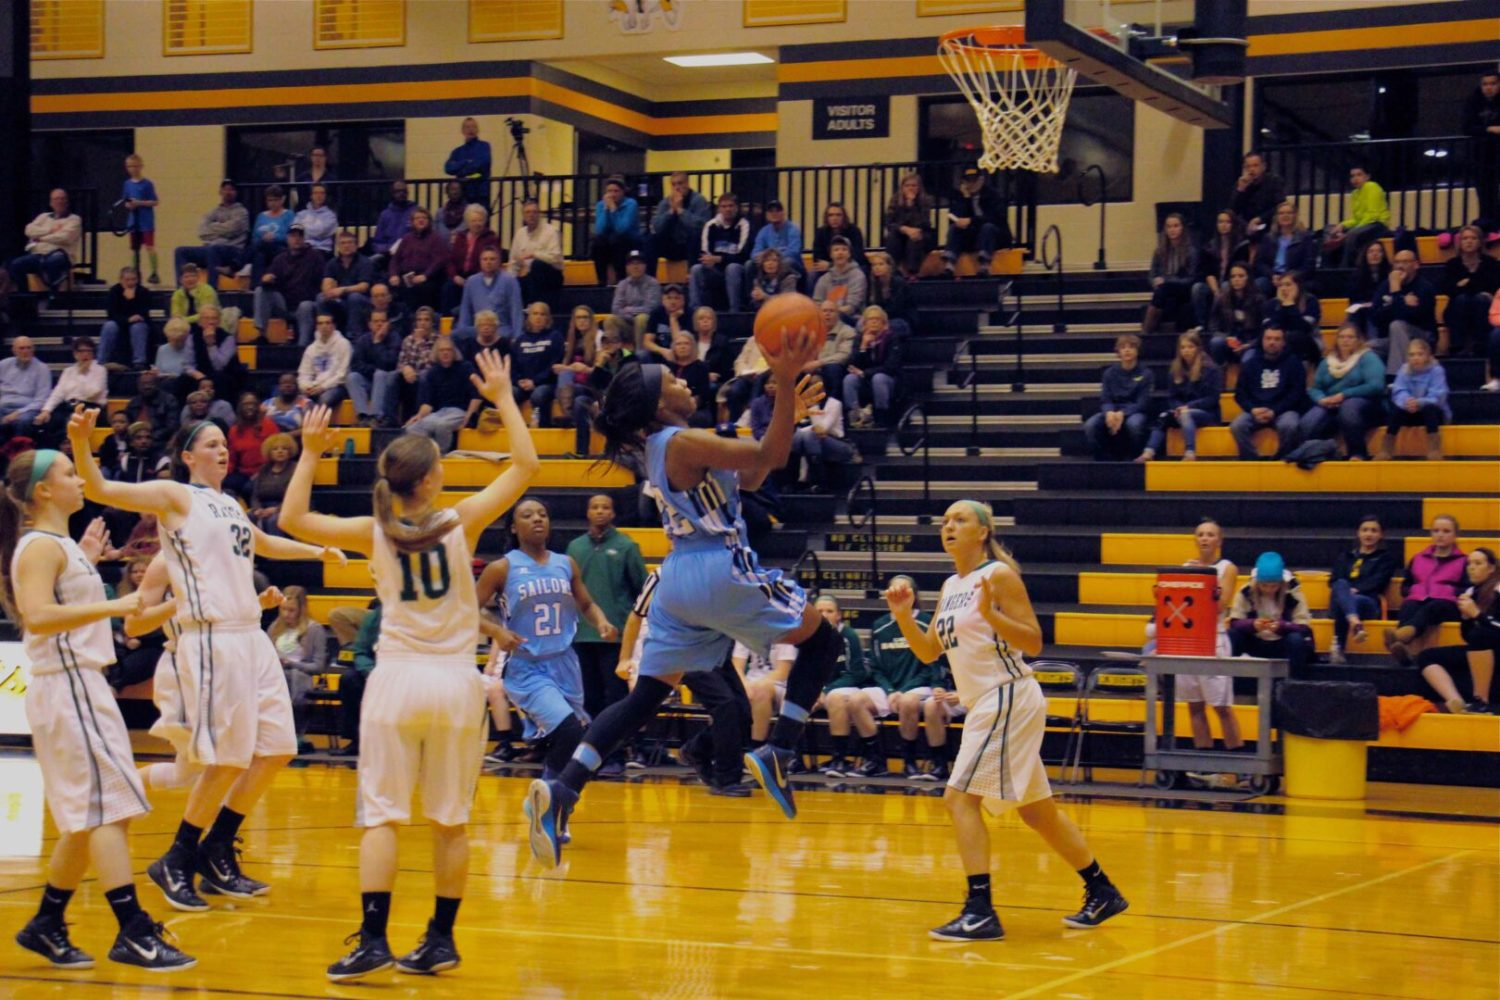 Mona Shores girls basketball team falls behind early, loses to Forest Hills Central in Class A regionals